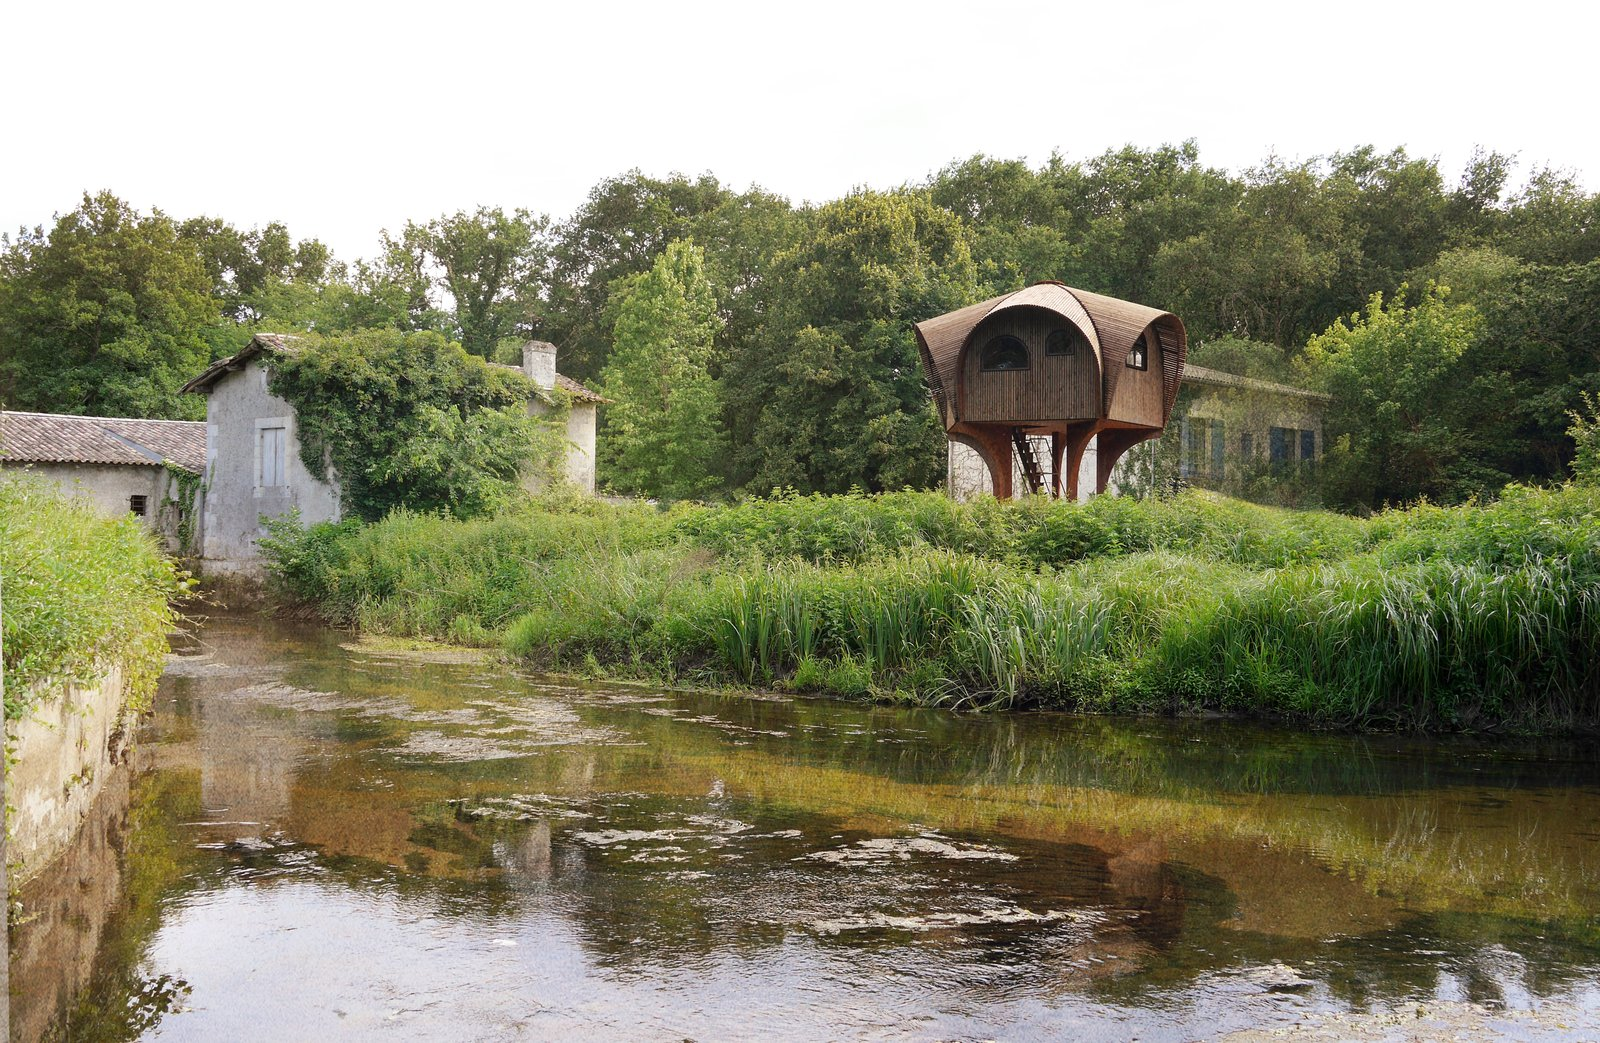 Photo 1 of 5 in Le Haut Perché Offers Free Shelter For Hikers in the Rustic Countryside of Bordeaux